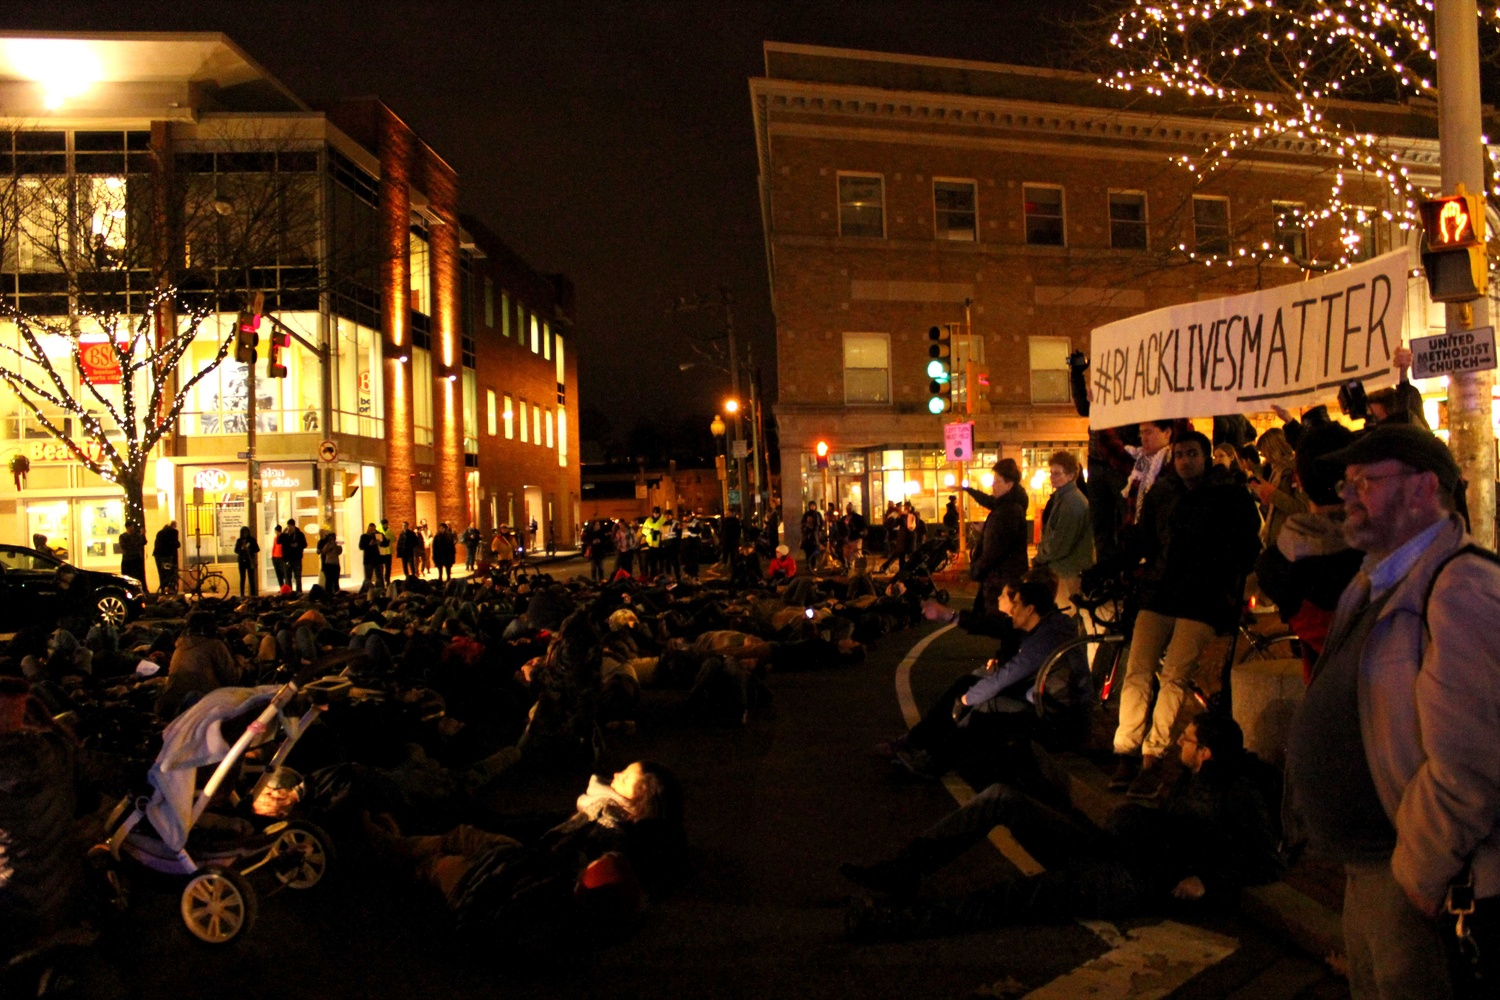 """Protestors lay down during a """"die-in"""" in Davis Square on Friday evening to protest the recent non-indictments of the officers in the Michael Brown and Eric Garner cases. Protestors began in Davis Square and continued to MIT, laying down at key transportation sites."""